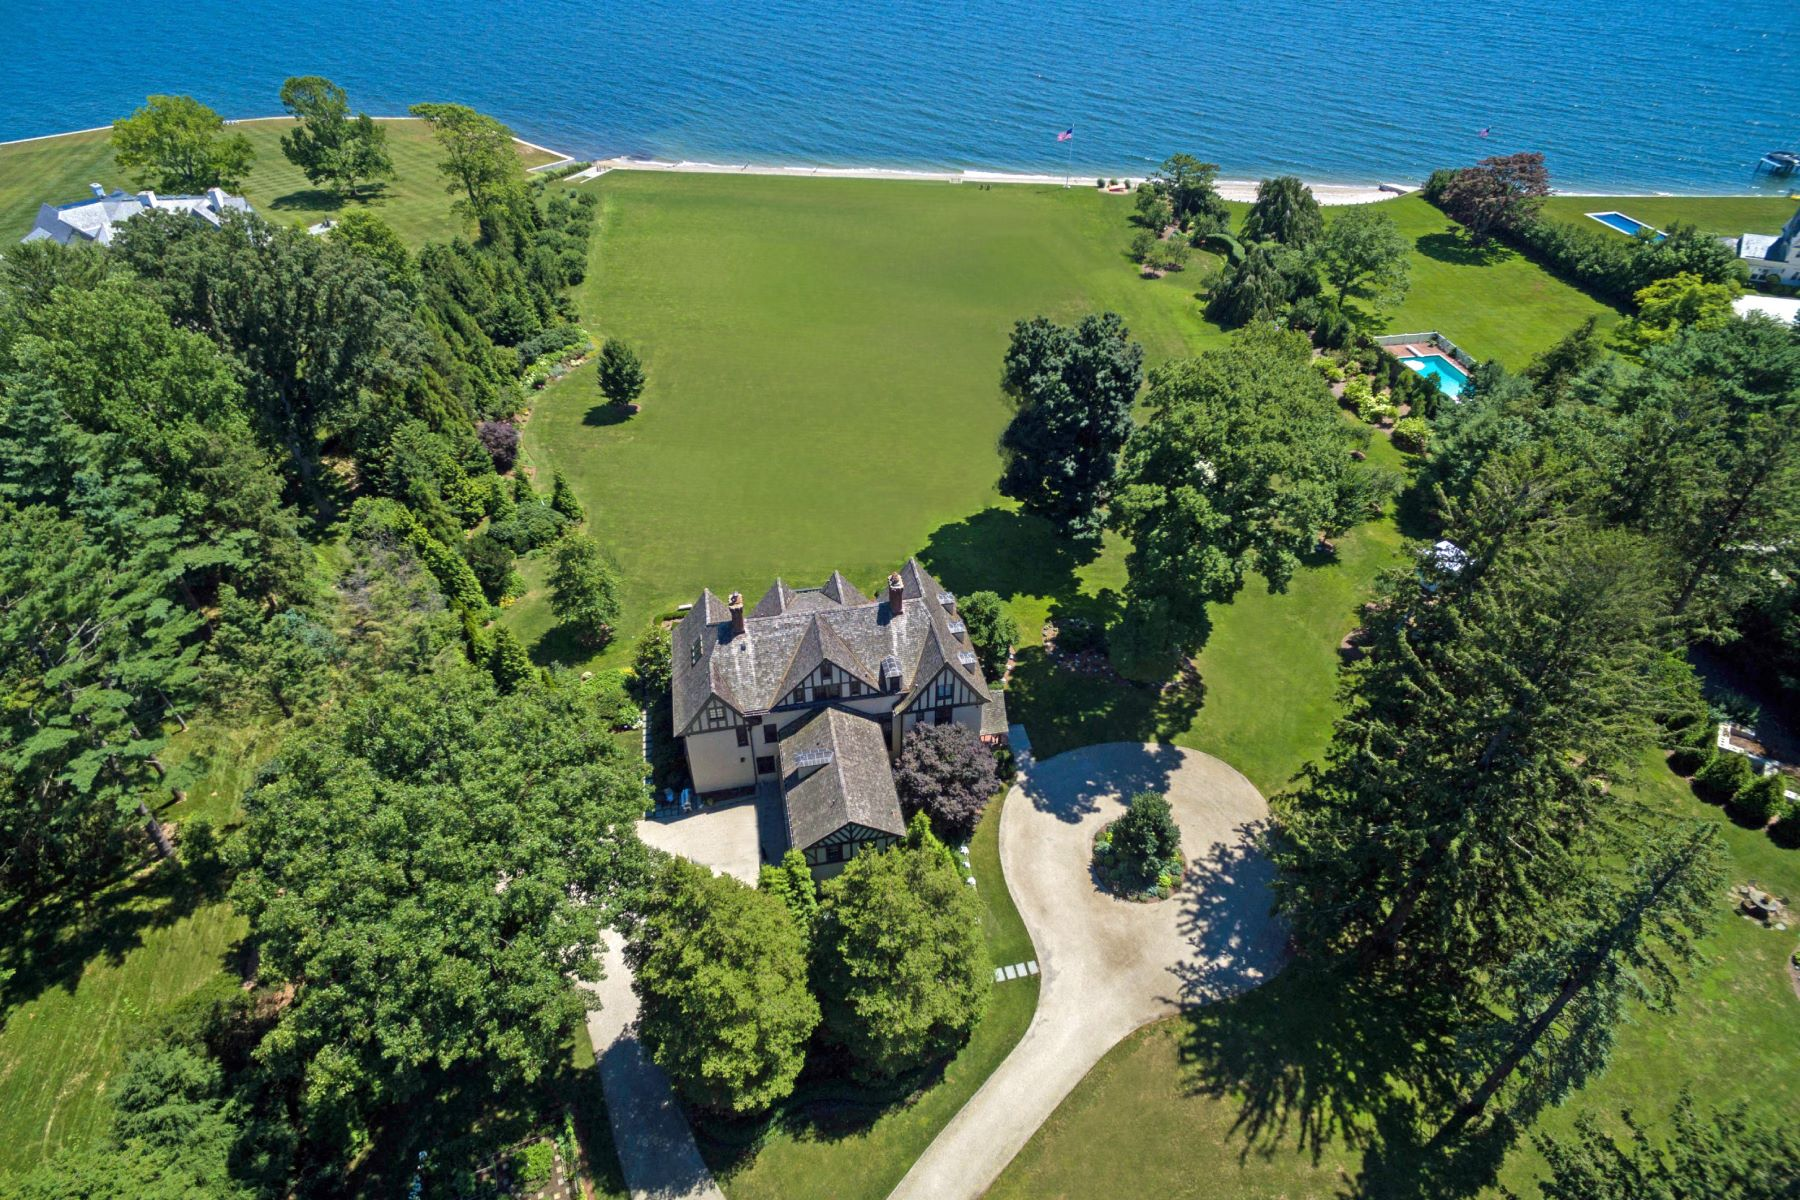 Single Family Homes for Sale at 2 Lot Waterfront Estate 114 & 116 Beachside Avenue Westport, Connecticut 06880 United States